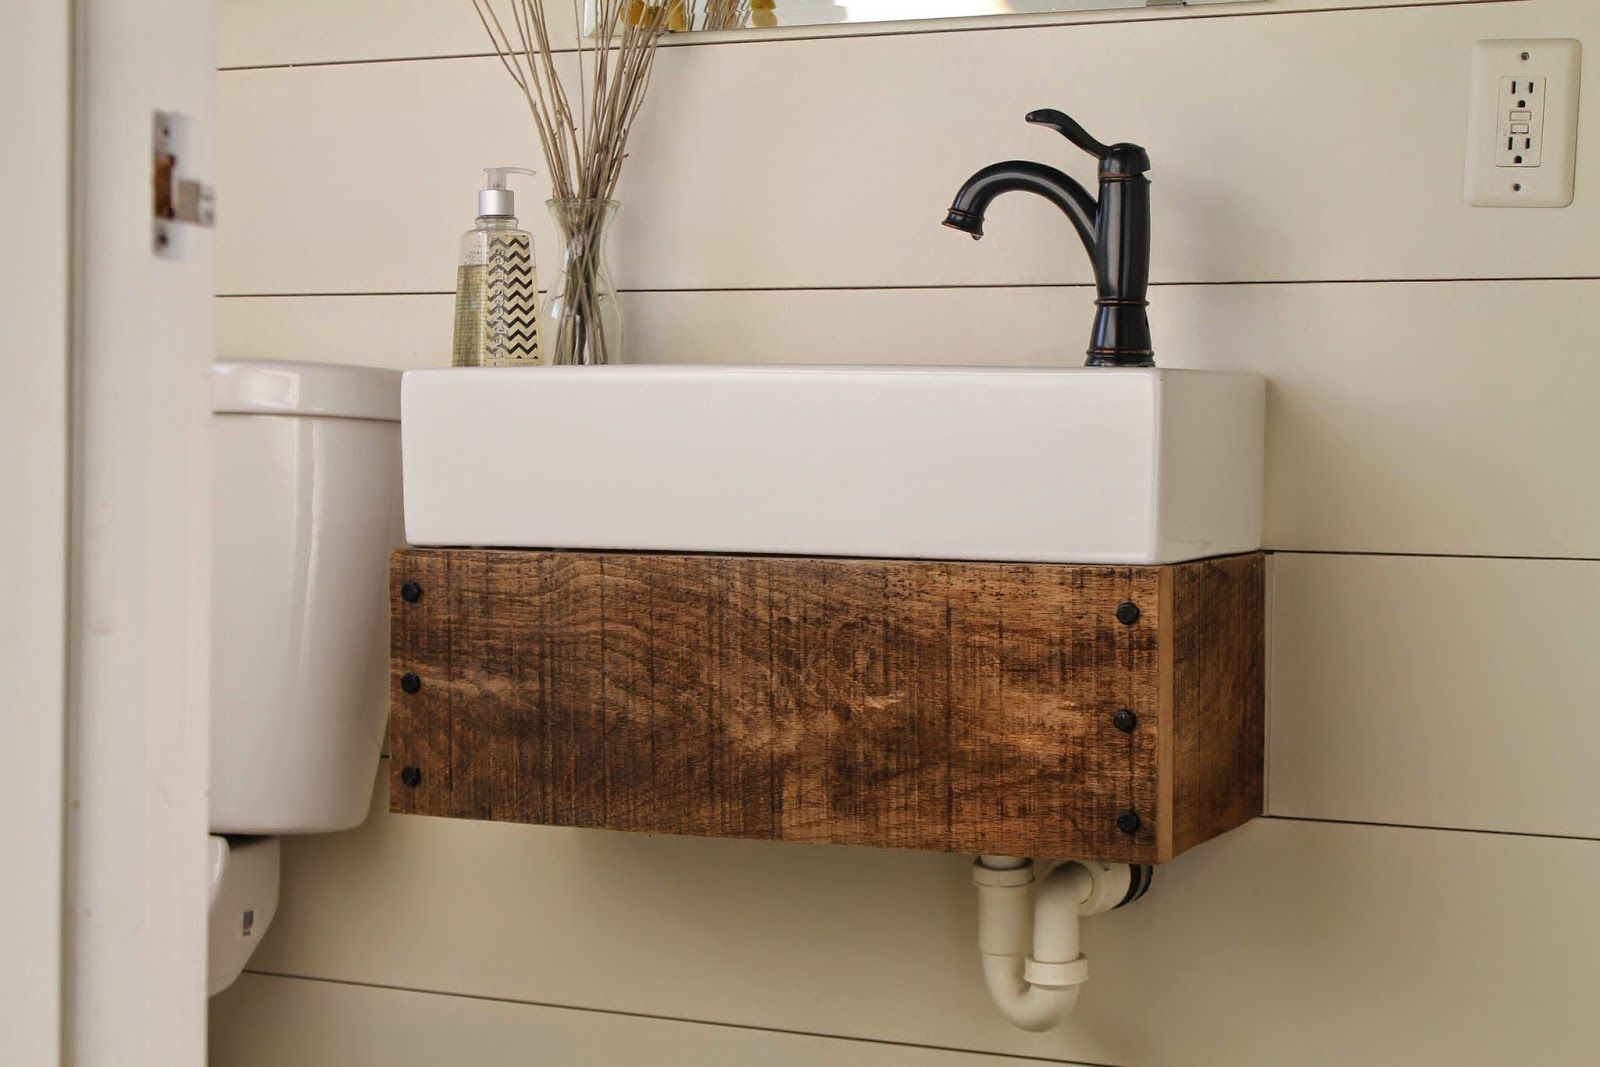 Maybe A Good Alternative For Small Powder Room Diy Floating Reclaimed Wood  Vanity With IKEA Sink   Girl Meets Carpenter Featured On